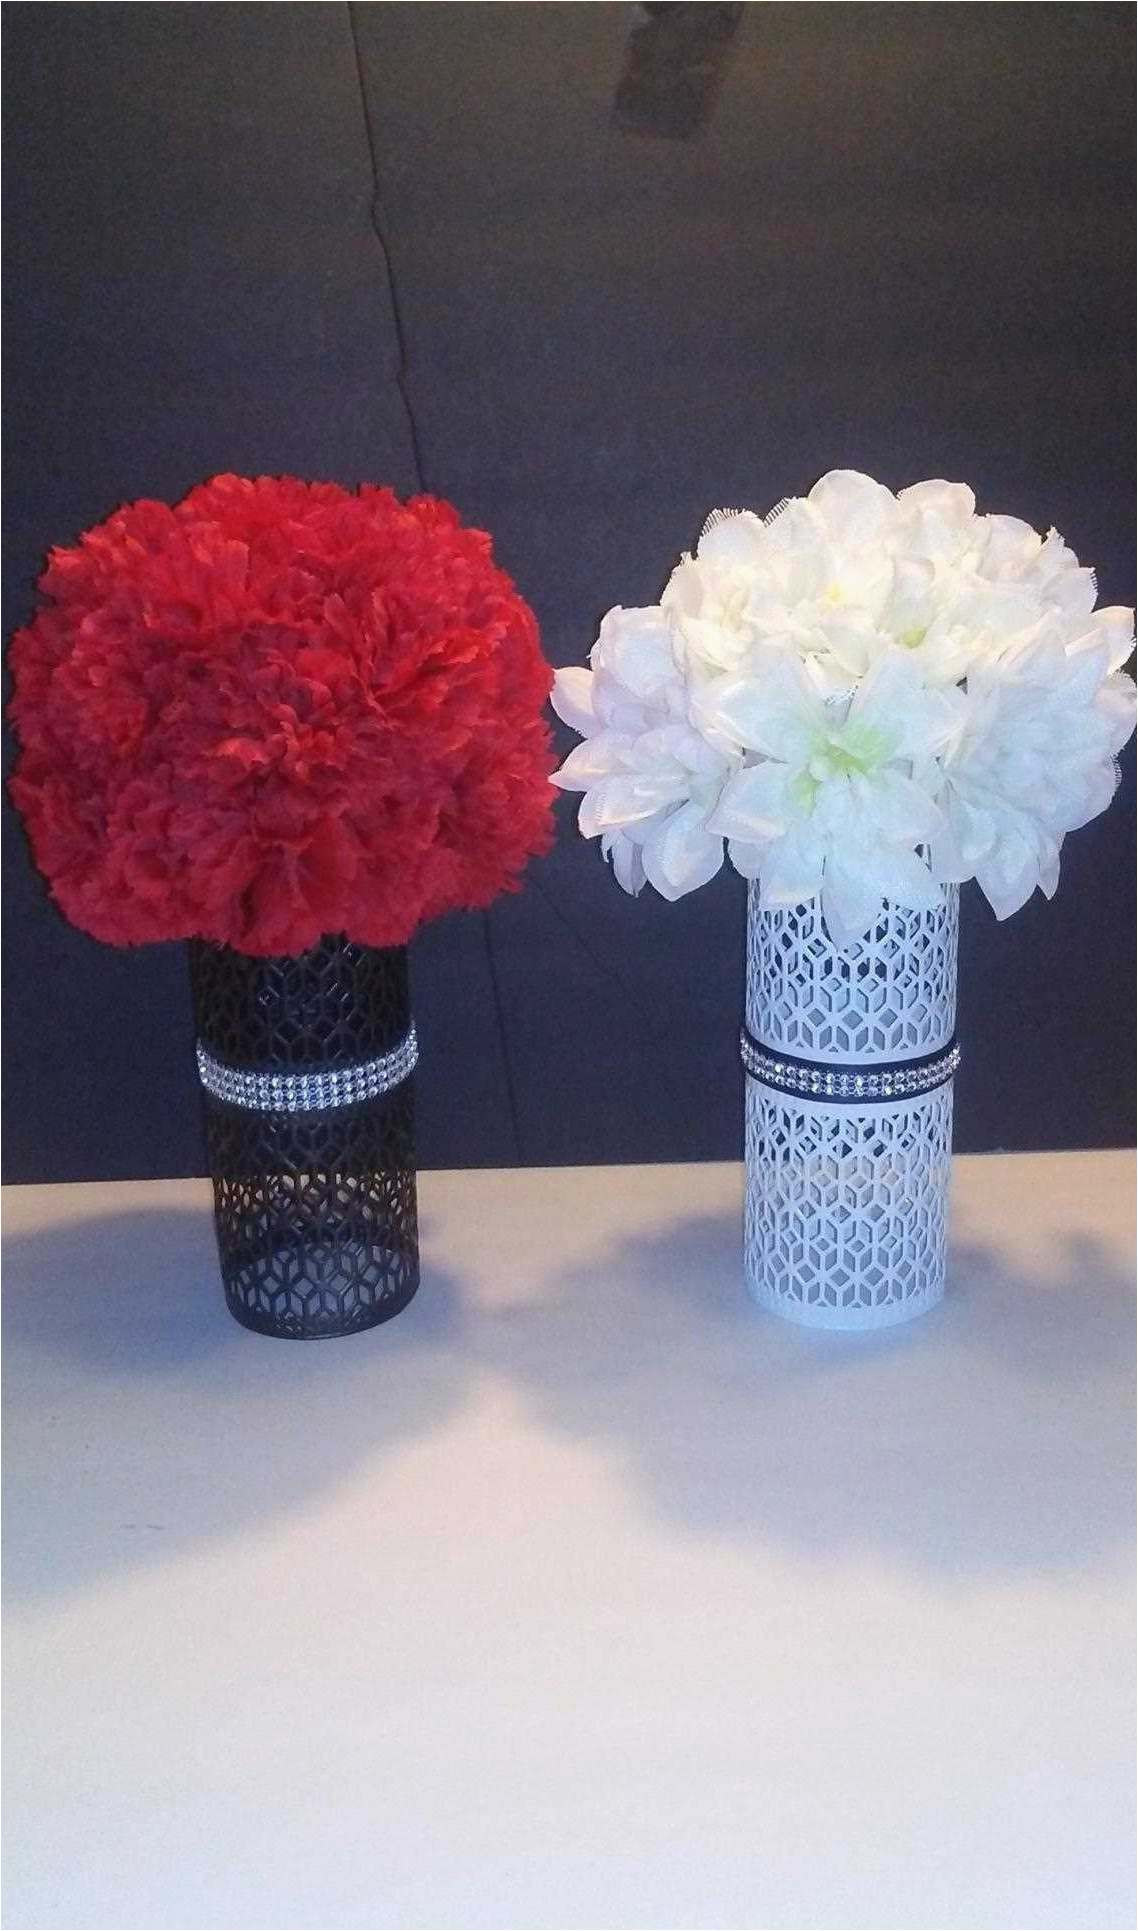 small wood vase of handmade decoration for your plan dollar tree wedding decorations intended for handmade decoration idea dollar tree wedding decorations awesome h vases dollar vase i 0d to